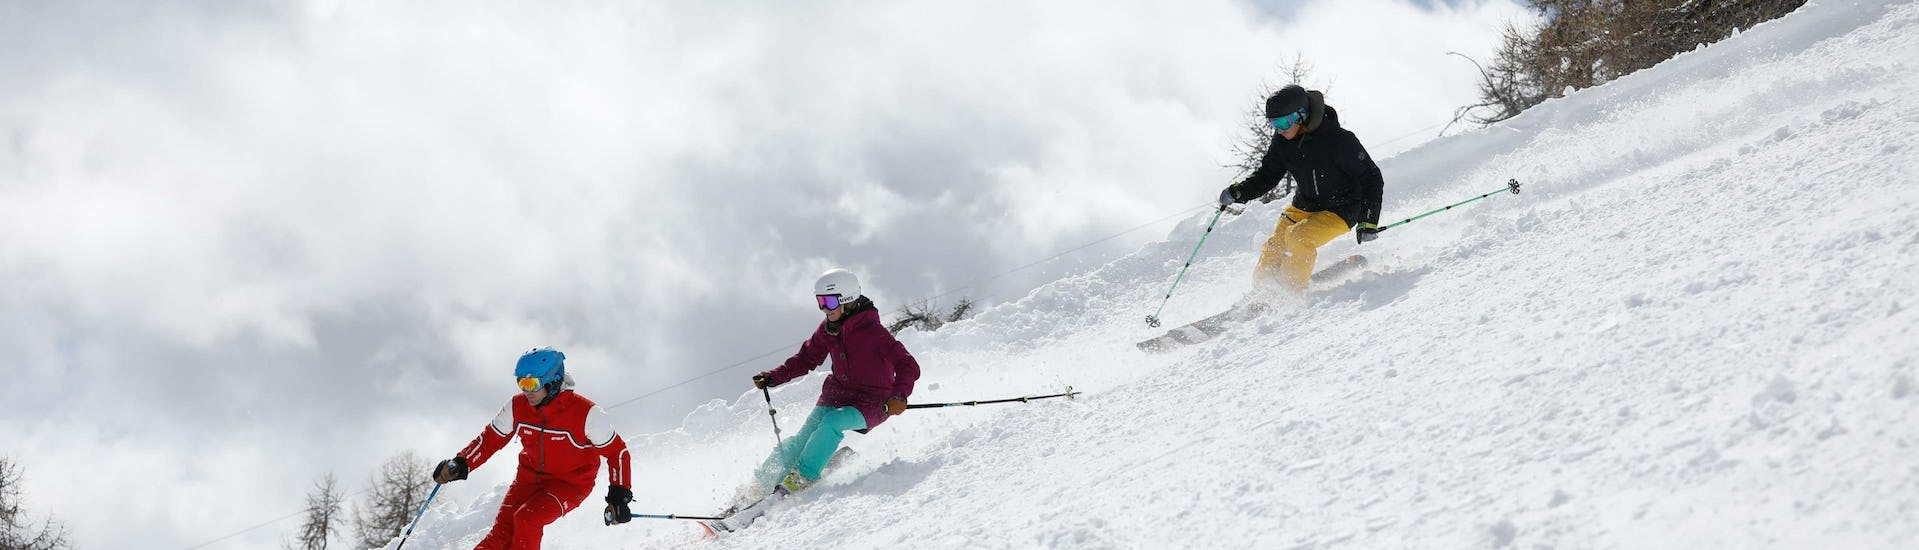 Ski Lessons for Adults - High Season - All Levels - Morning